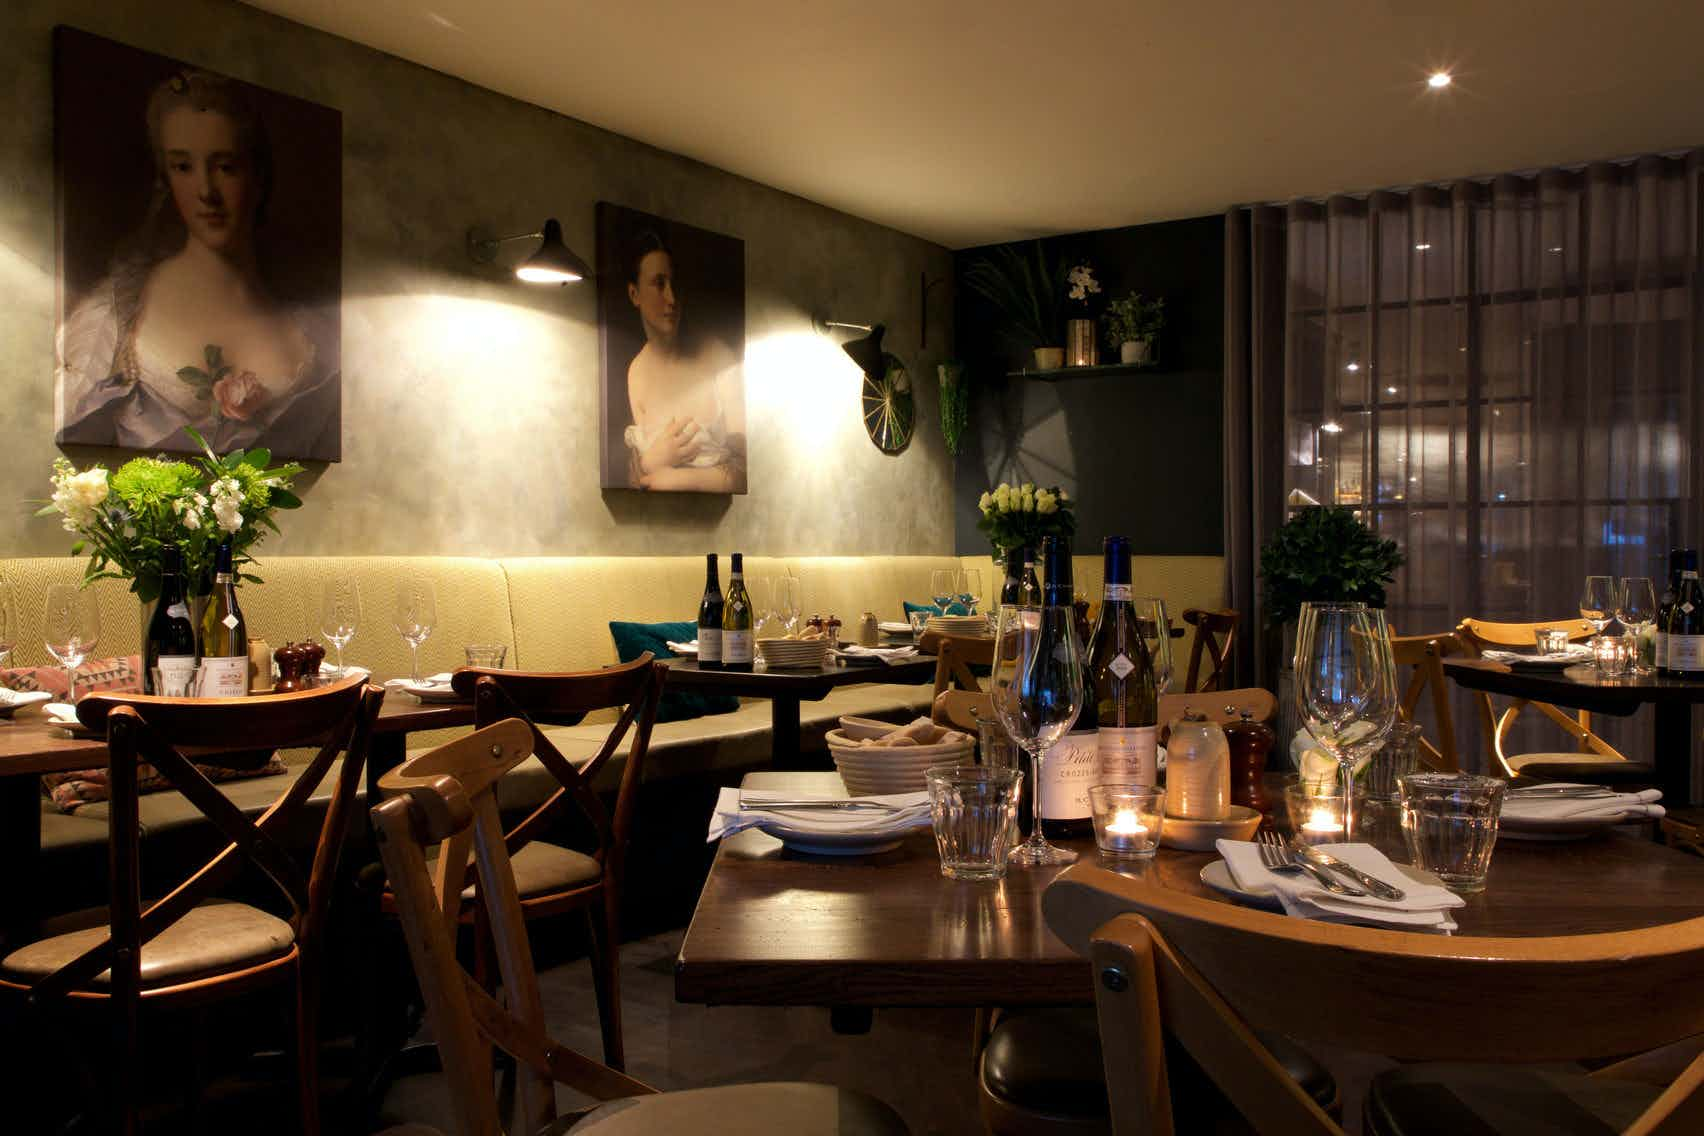 Deluxe private room, Brasserie Blanc, Southbank